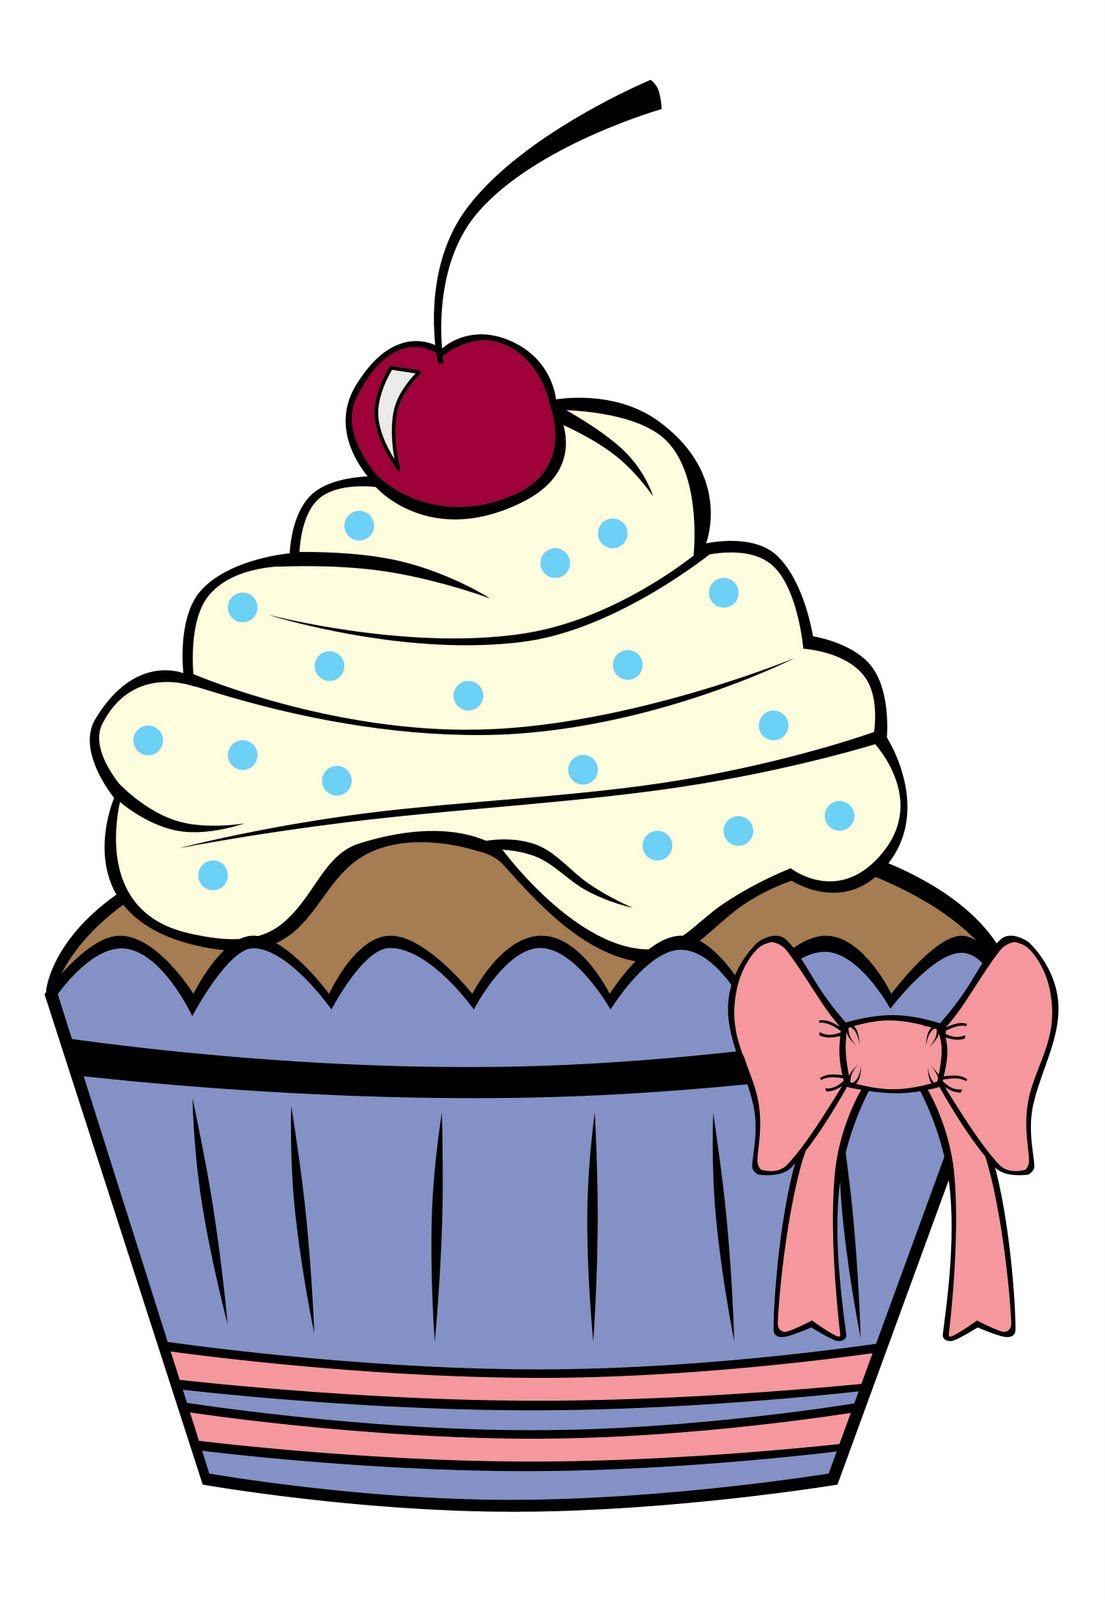 1105x1600 Cupcake Outline Clip Art Cartoon Cupcake Outline Cake Cupcakes